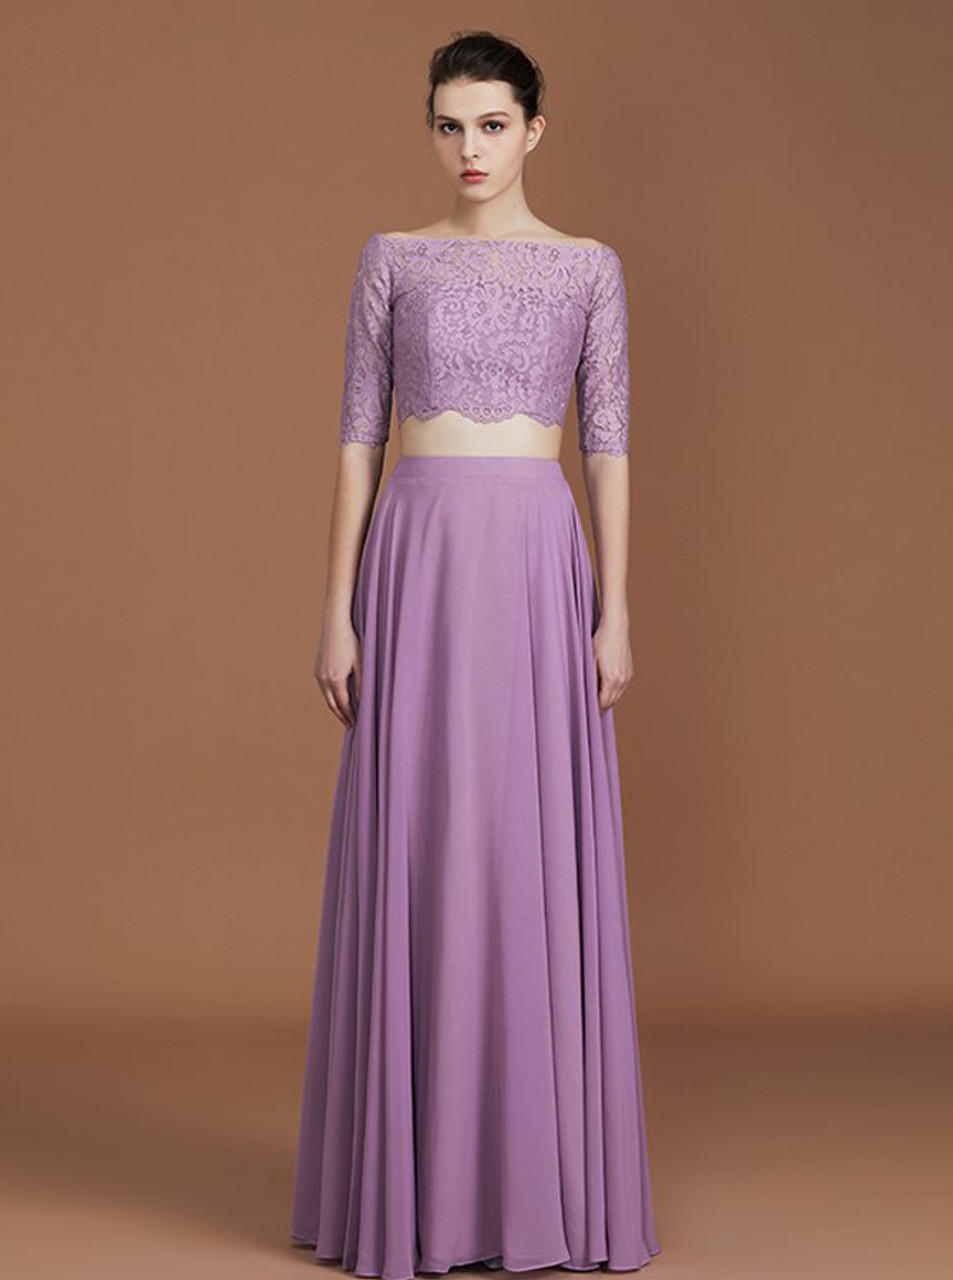 cd9b861ef162 Lilac Two Piece Bridesmaid Dresses,Full Length Bridesmaid Dress,11339 -  Landress.co.uk